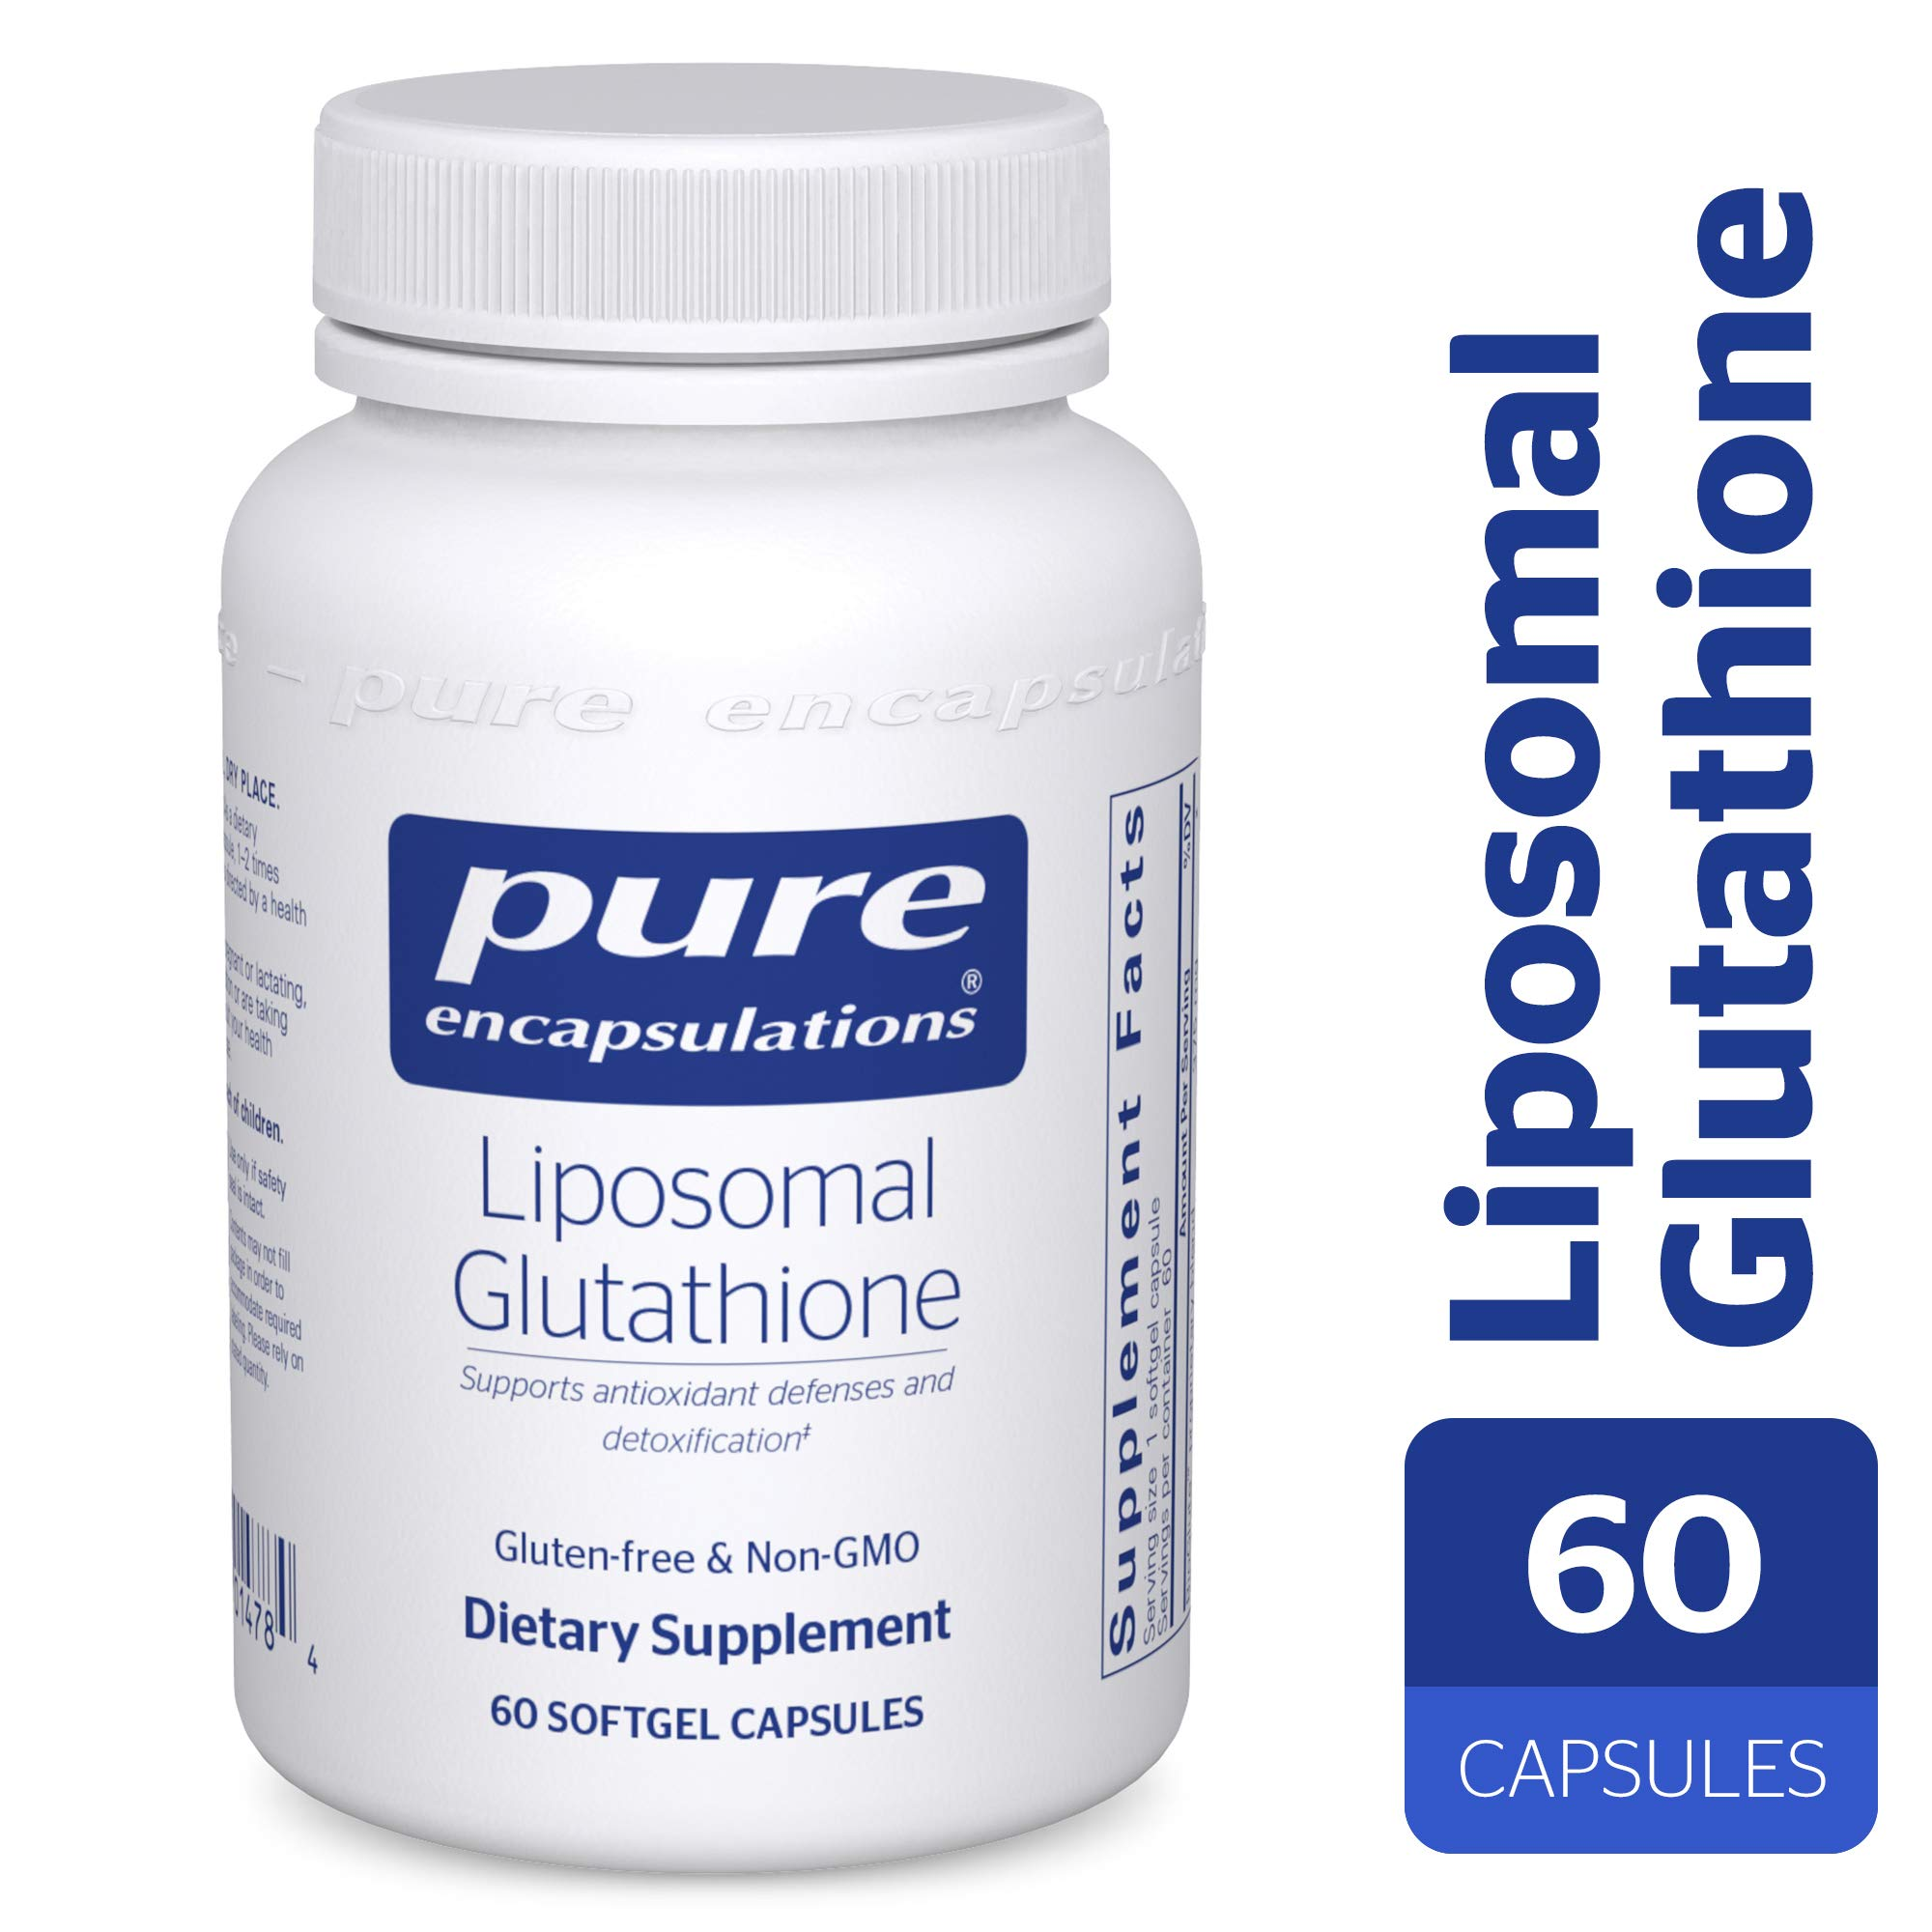 Pure Encapsulations - Liposomal Glutathione - Antioxidants, Liver Support and Detoxification* - 60 Softgel Capsules by Pure Encapsulations